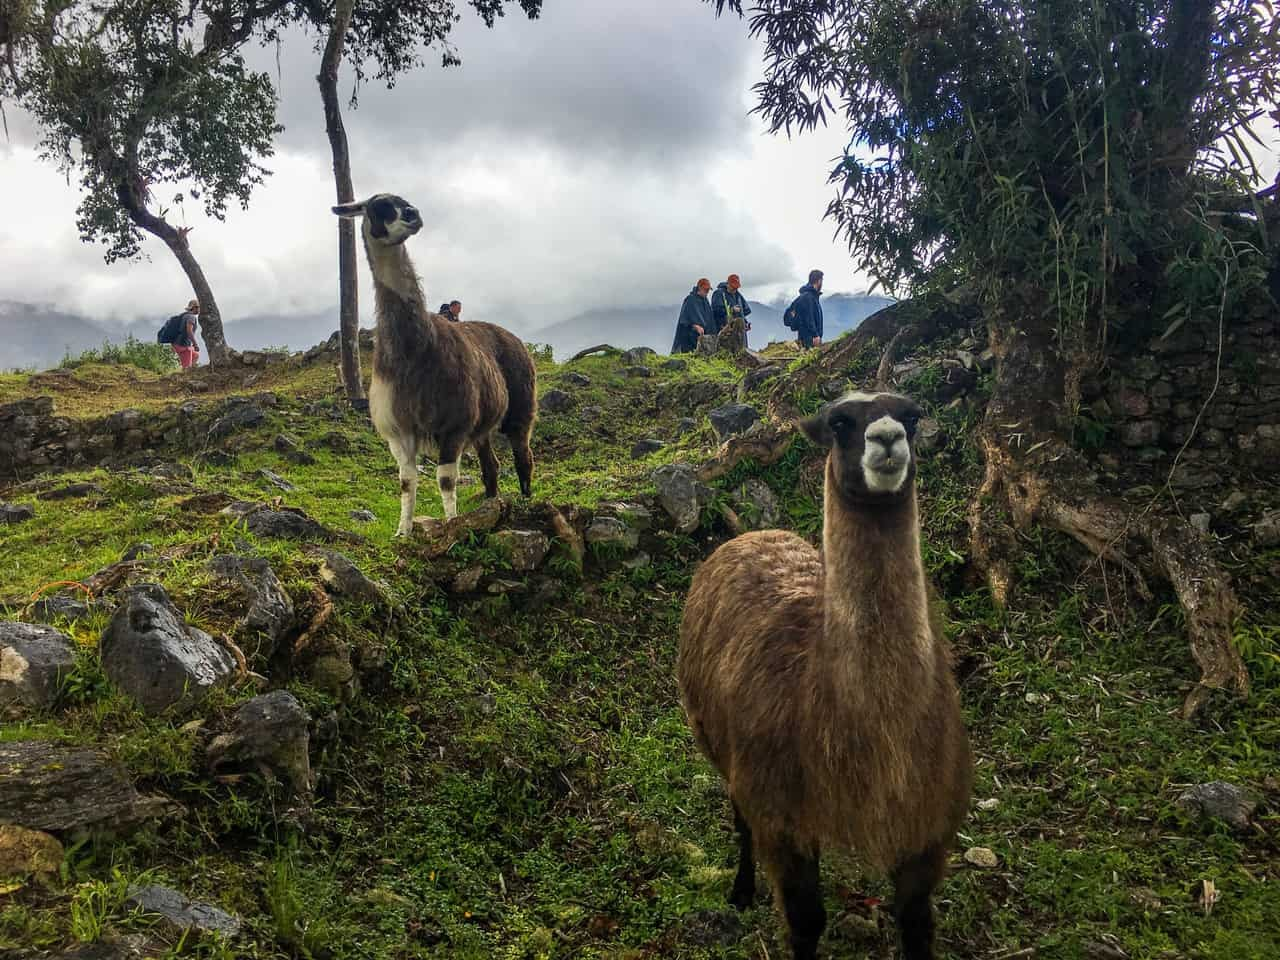 The llamas that abound in the ancient citadel seem to also enjoy the views. Kuelap, Peru.